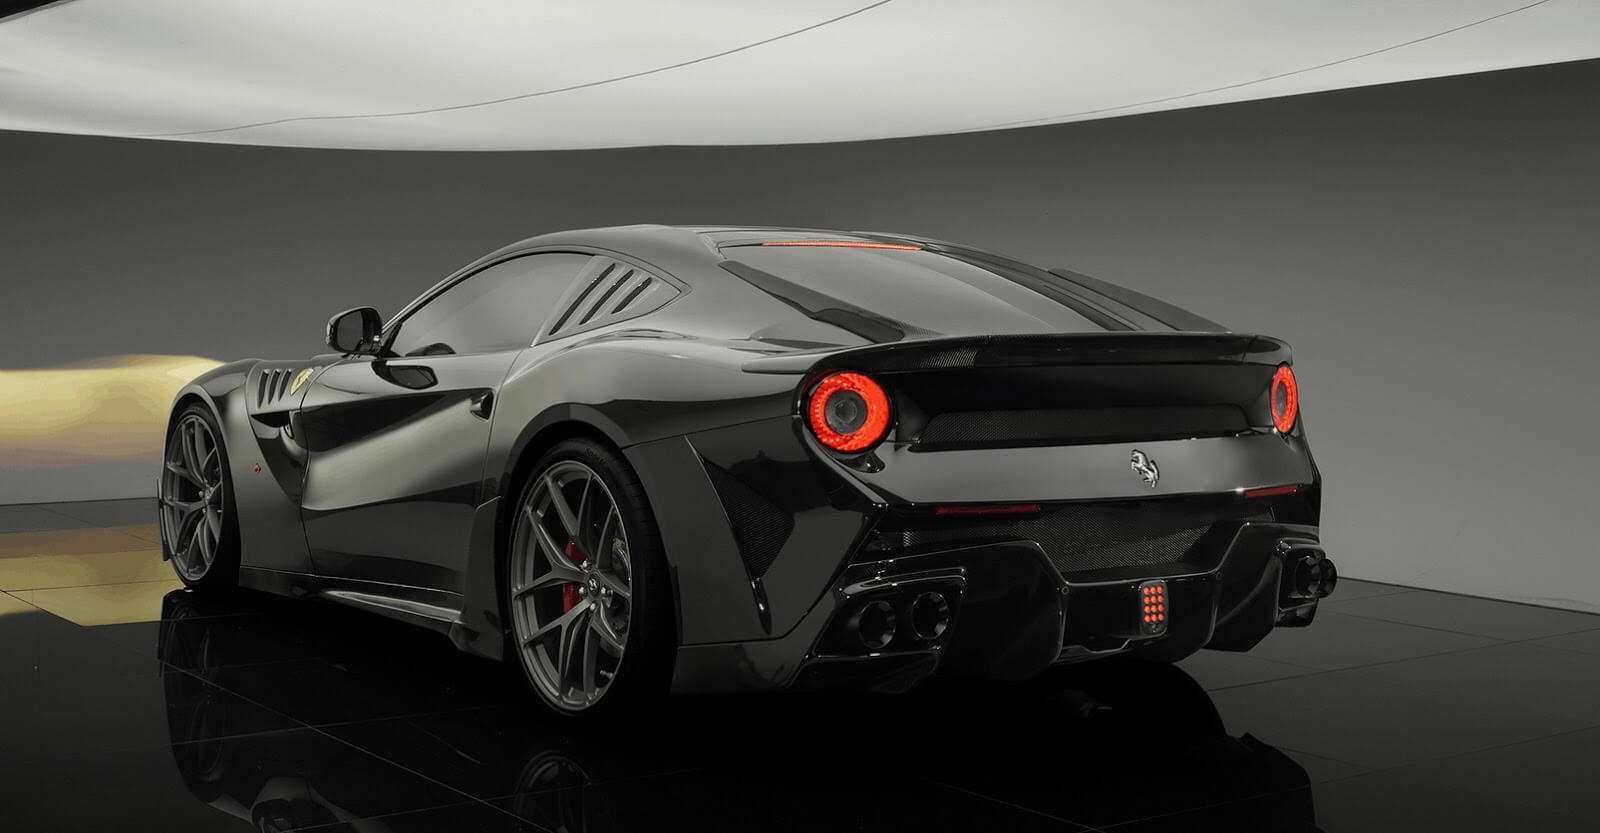 61 All New 2019 Ferrari F12 Berlinetta Ratings for 2019 Ferrari F12 Berlinetta